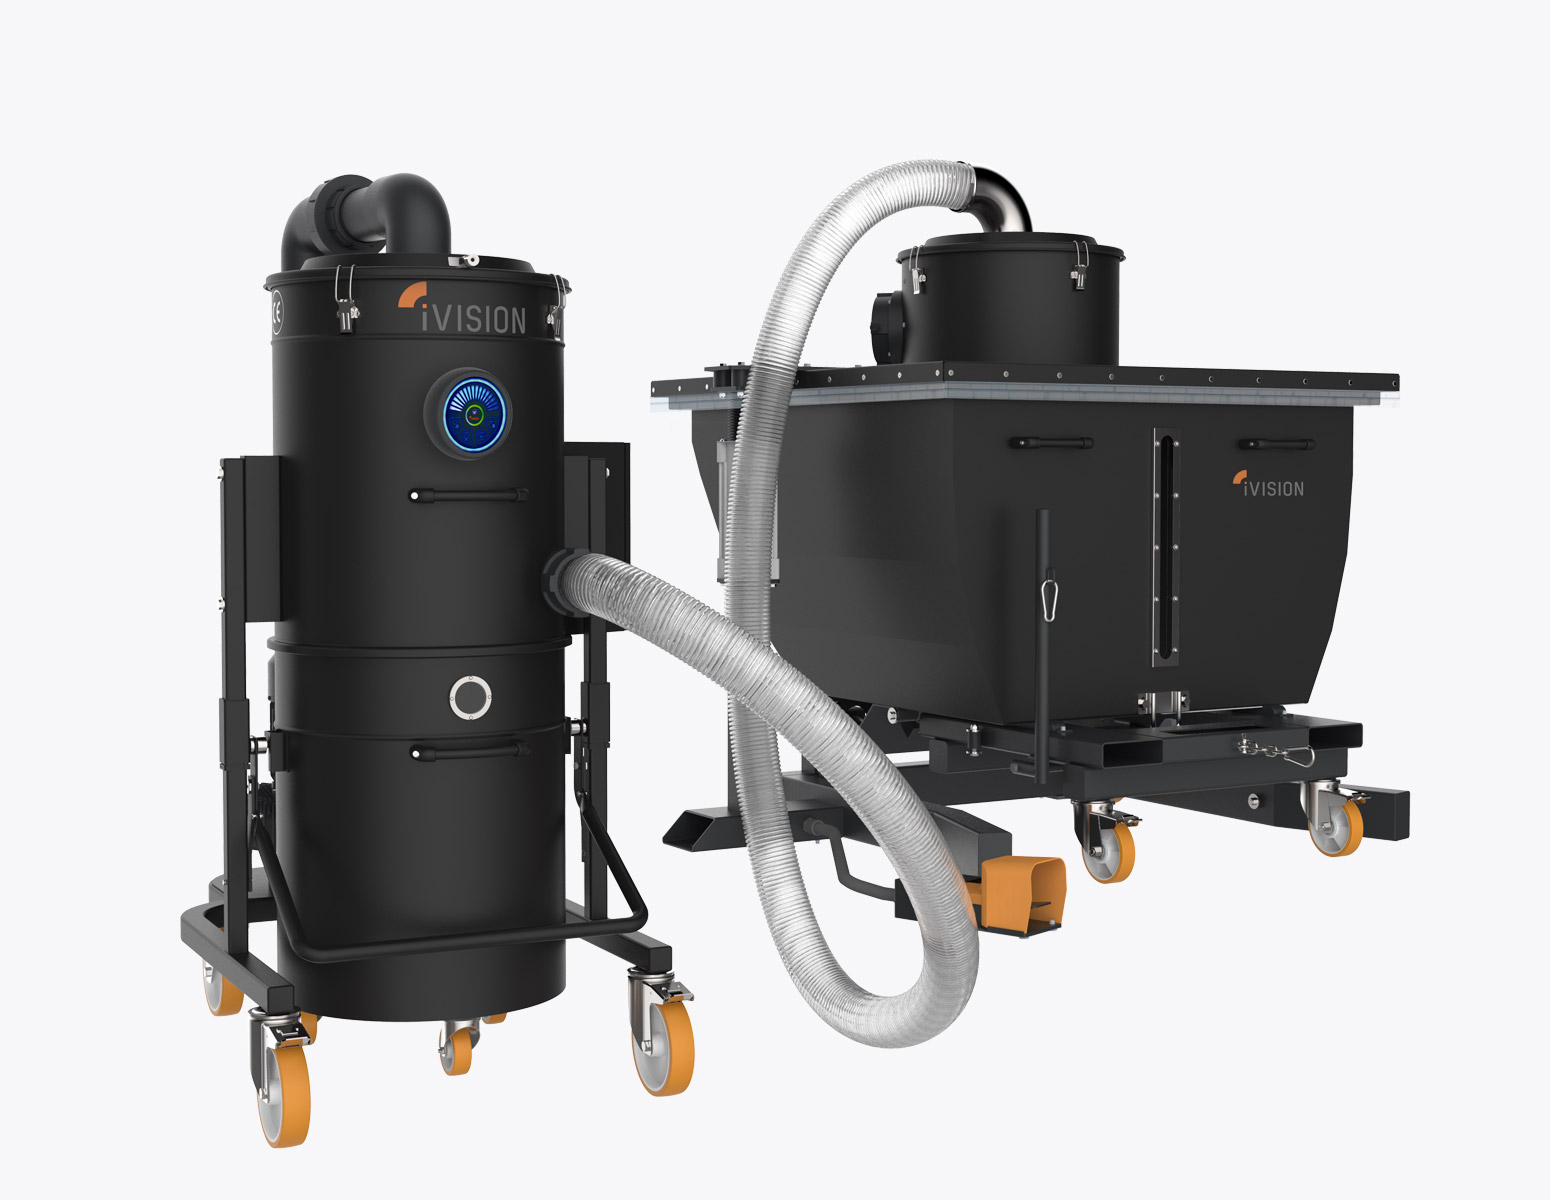 Attractive IV CUSTOM EMULSIO  Industrial Vacuum Cleaner For Separating Oil And Metal  Chips  IVision